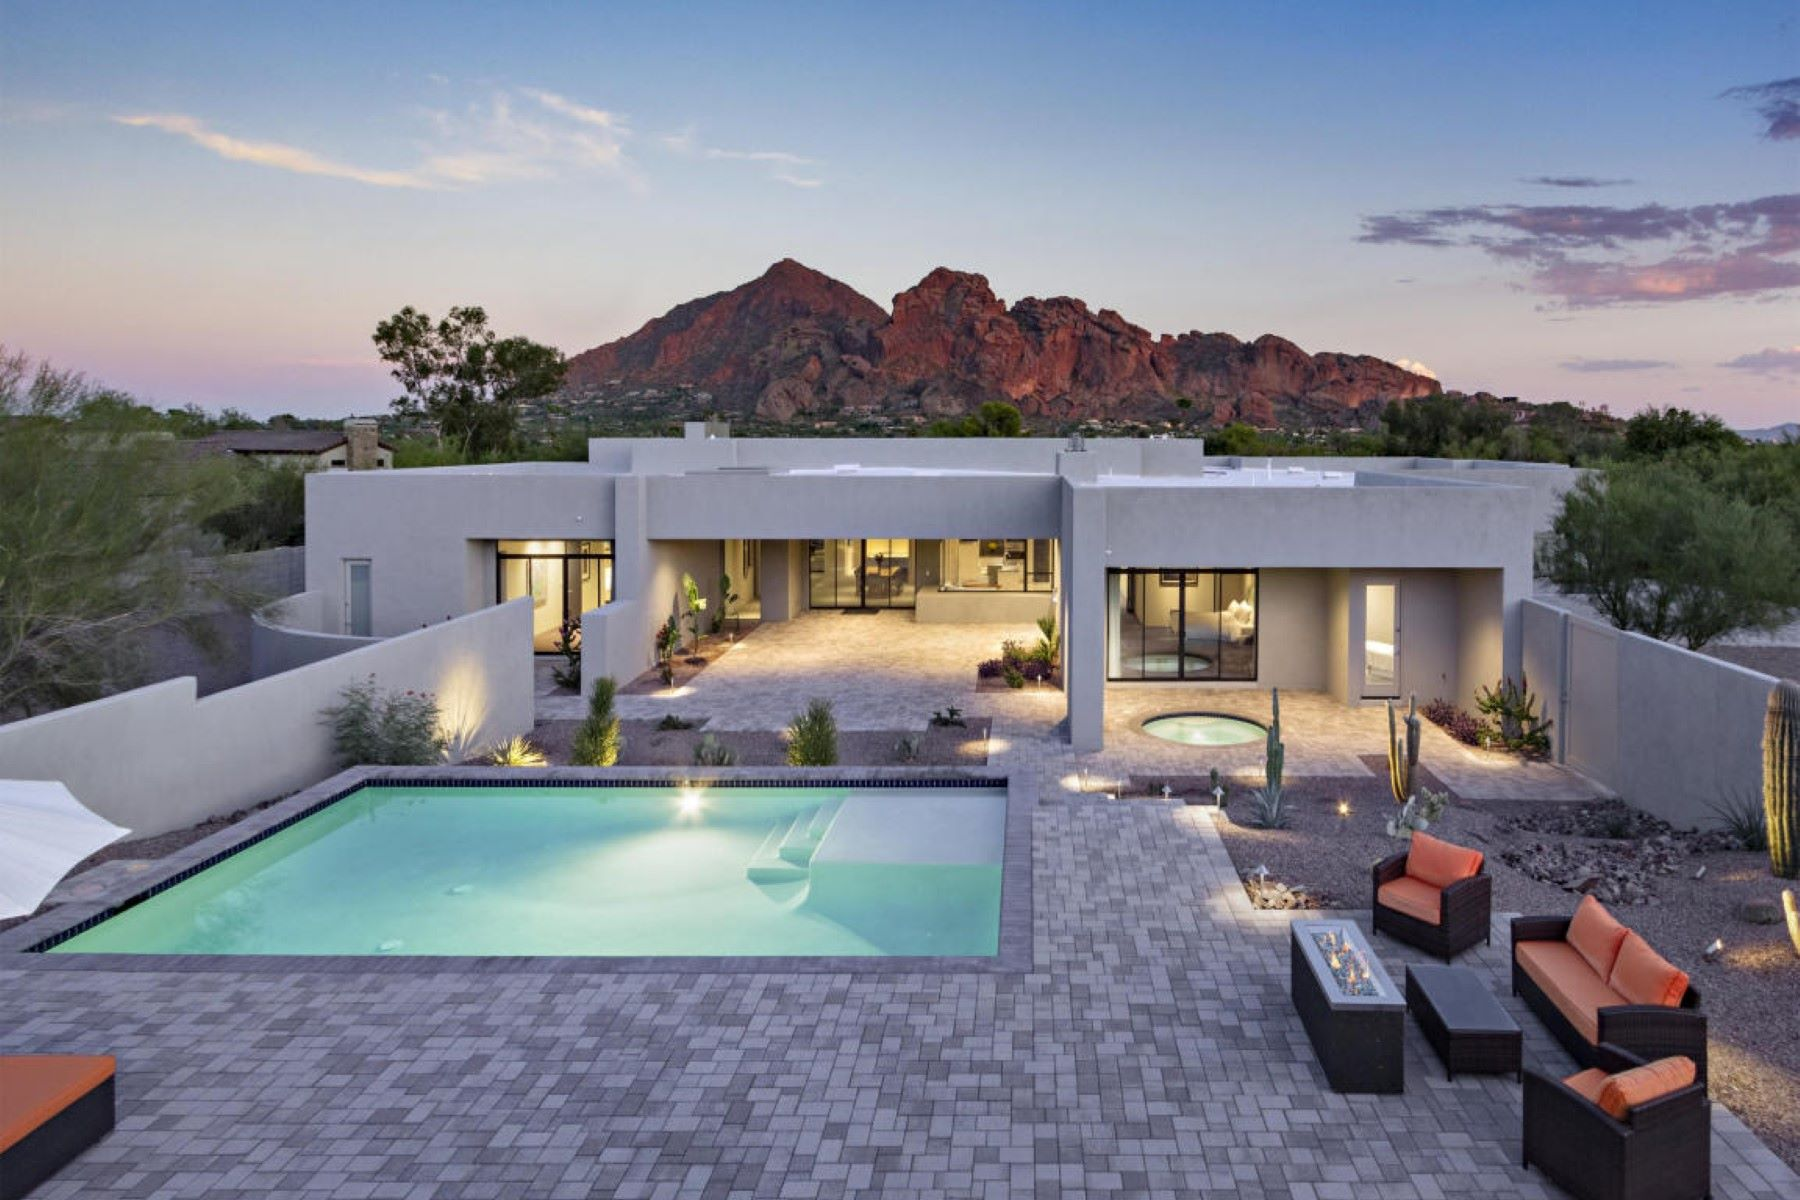 Moradia para Venda às Luxury contemporary home in Paradise Valley 4700 E Sierra Vista Dr Paradise Valley, Arizona, 85253 Estados Unidos